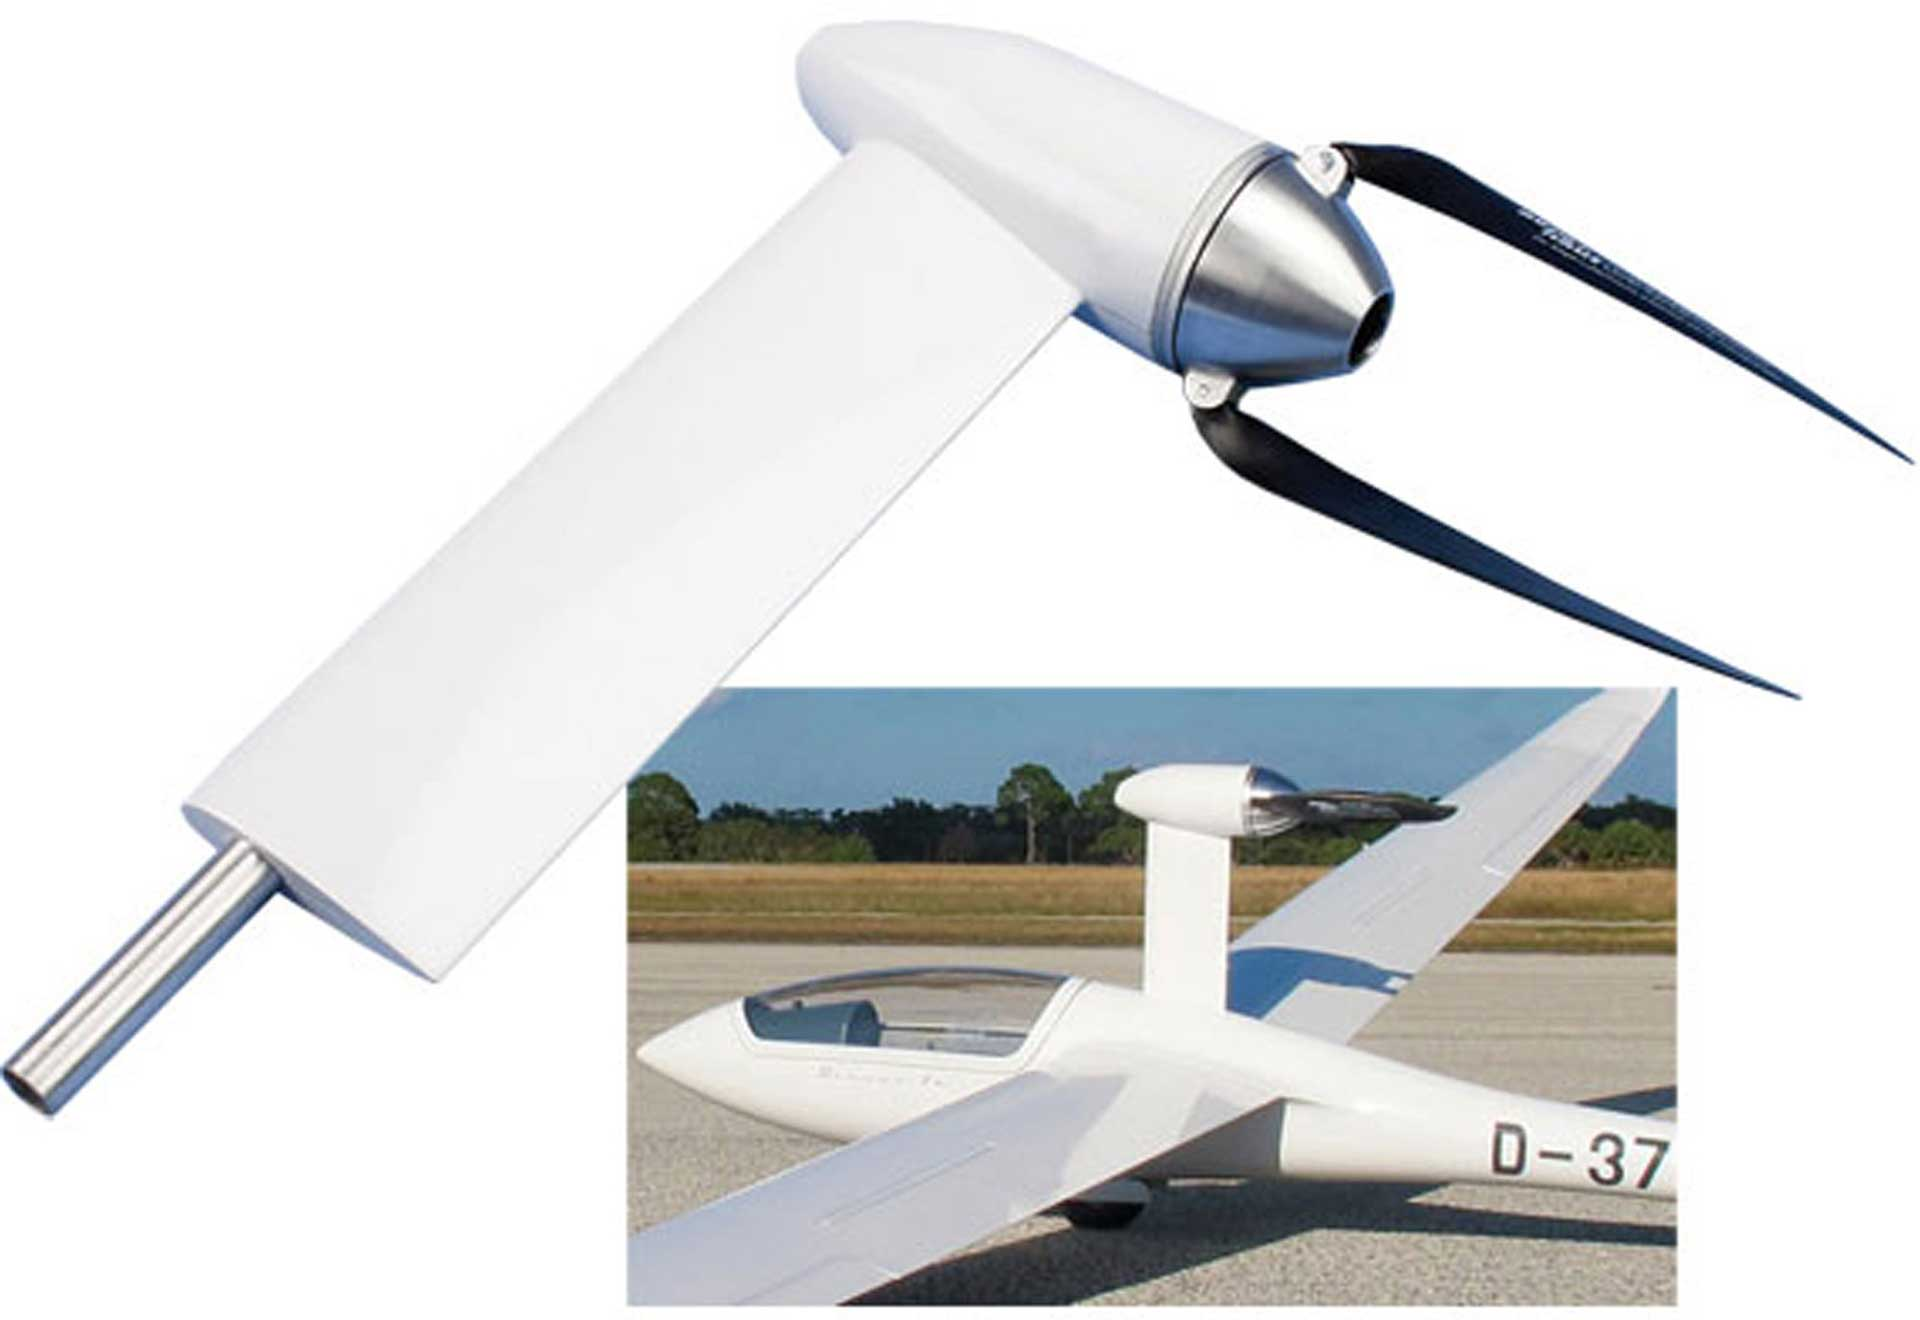 TOPMODEL ENGINE CAP FOR GLIDER BIS CA.13KG SAILPLANE POWER POD LAUNCHING SYSTEM